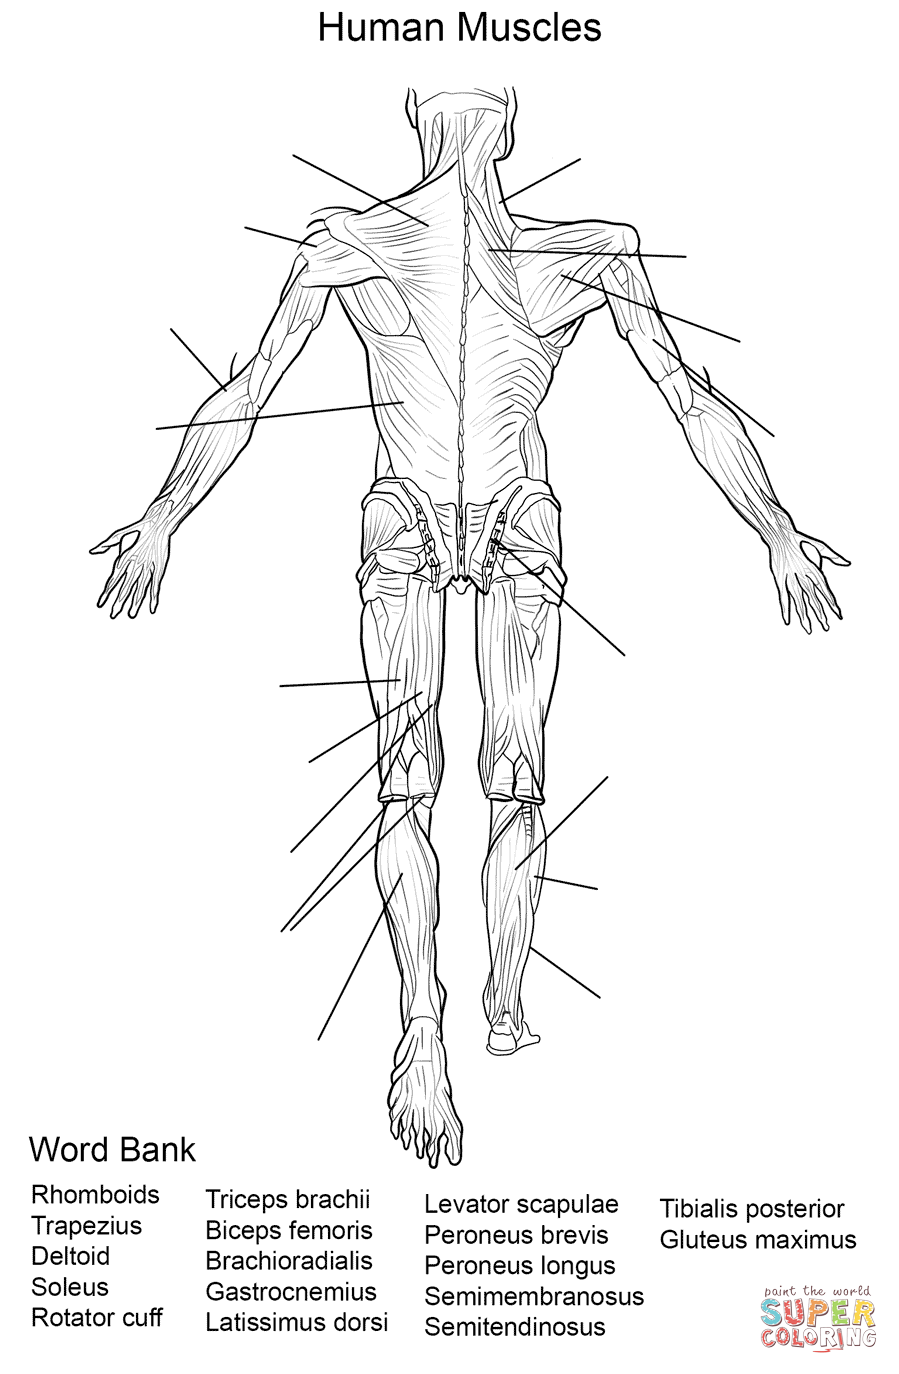 anatomy coloring pages free anatomy coloring pages coloring pages to print free coloring anatomy pages